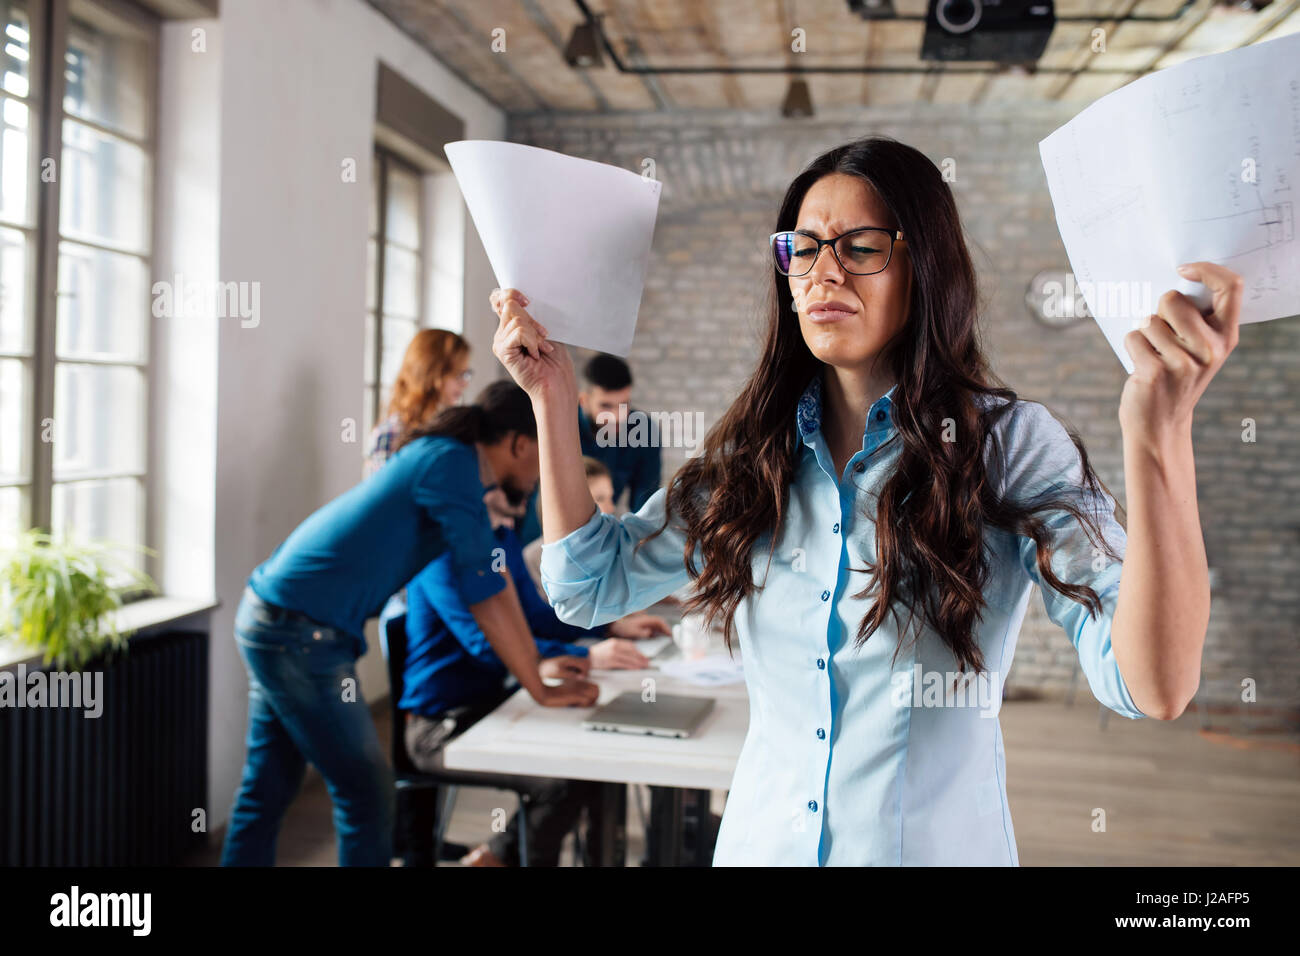 Overworked stressful businesswoman overwhelmed with papers in office - Stock Image